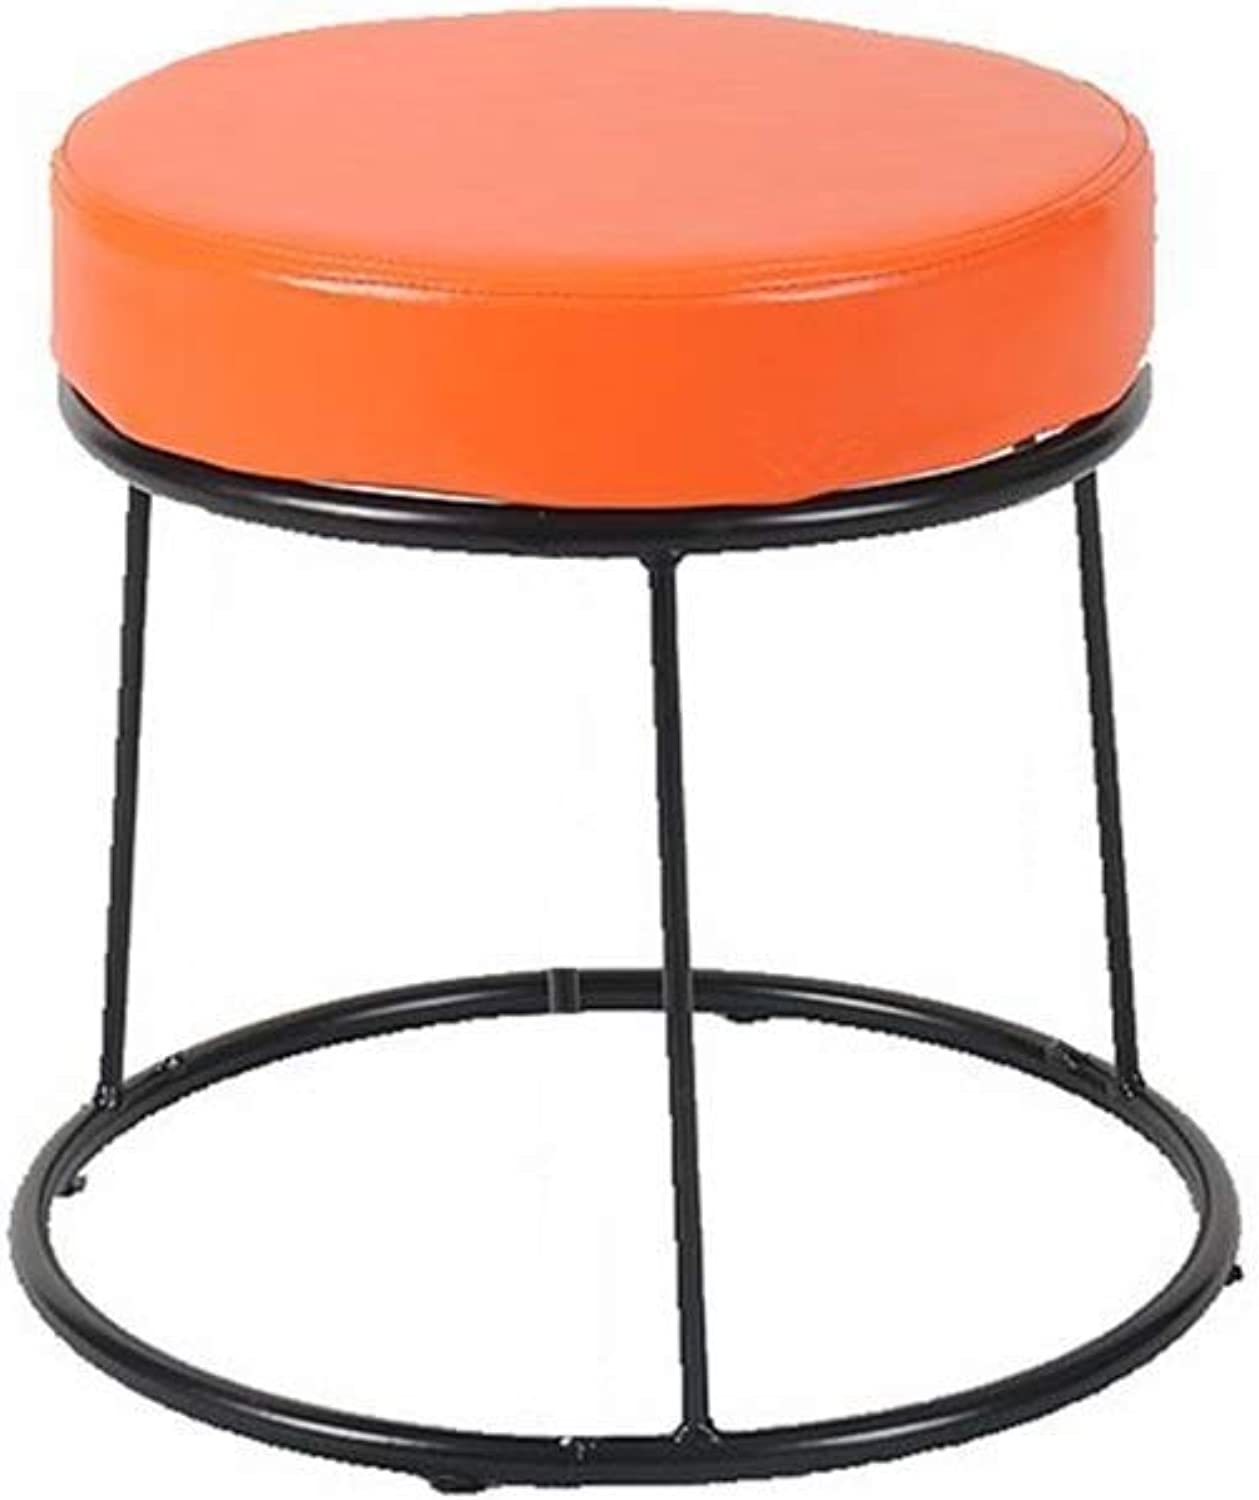 Stools, Retro Industry Decorative Stool Cafe Stool Home Leisure Dining 35cm 45cm Various Styles (color   Colour  E, Size   37  35cm)